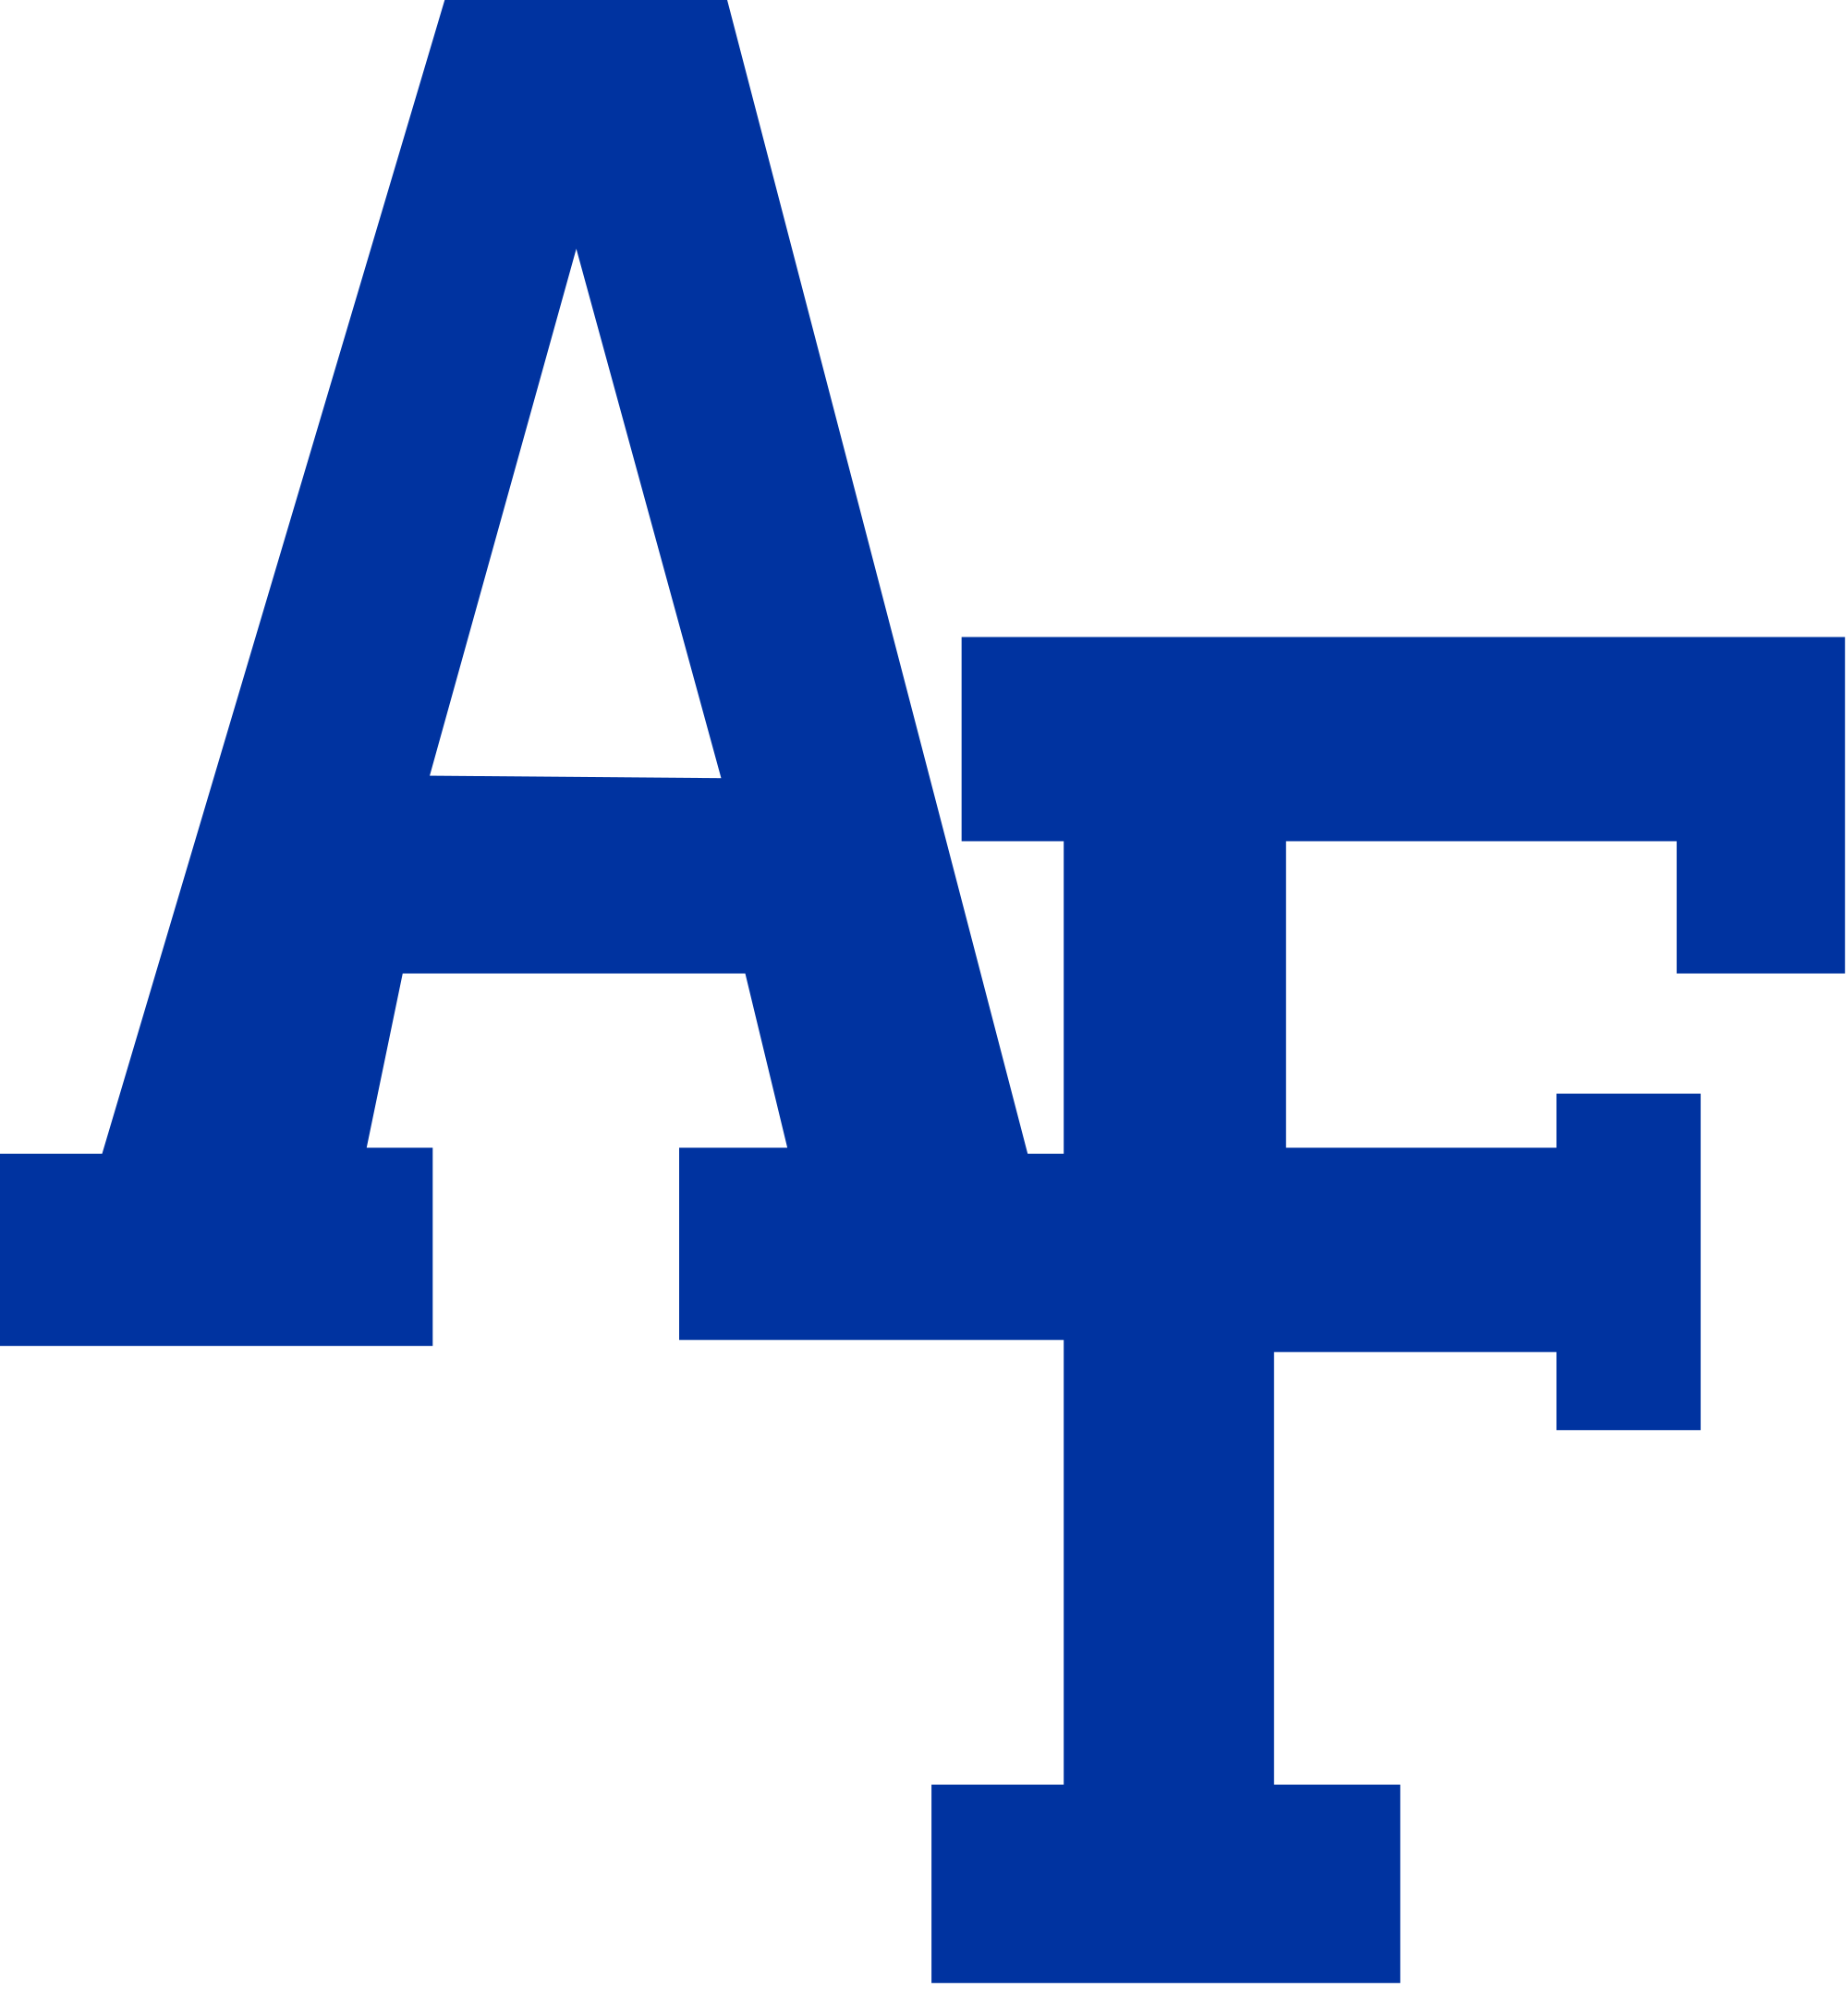 Air force png logo. File falcons svg wikimedia